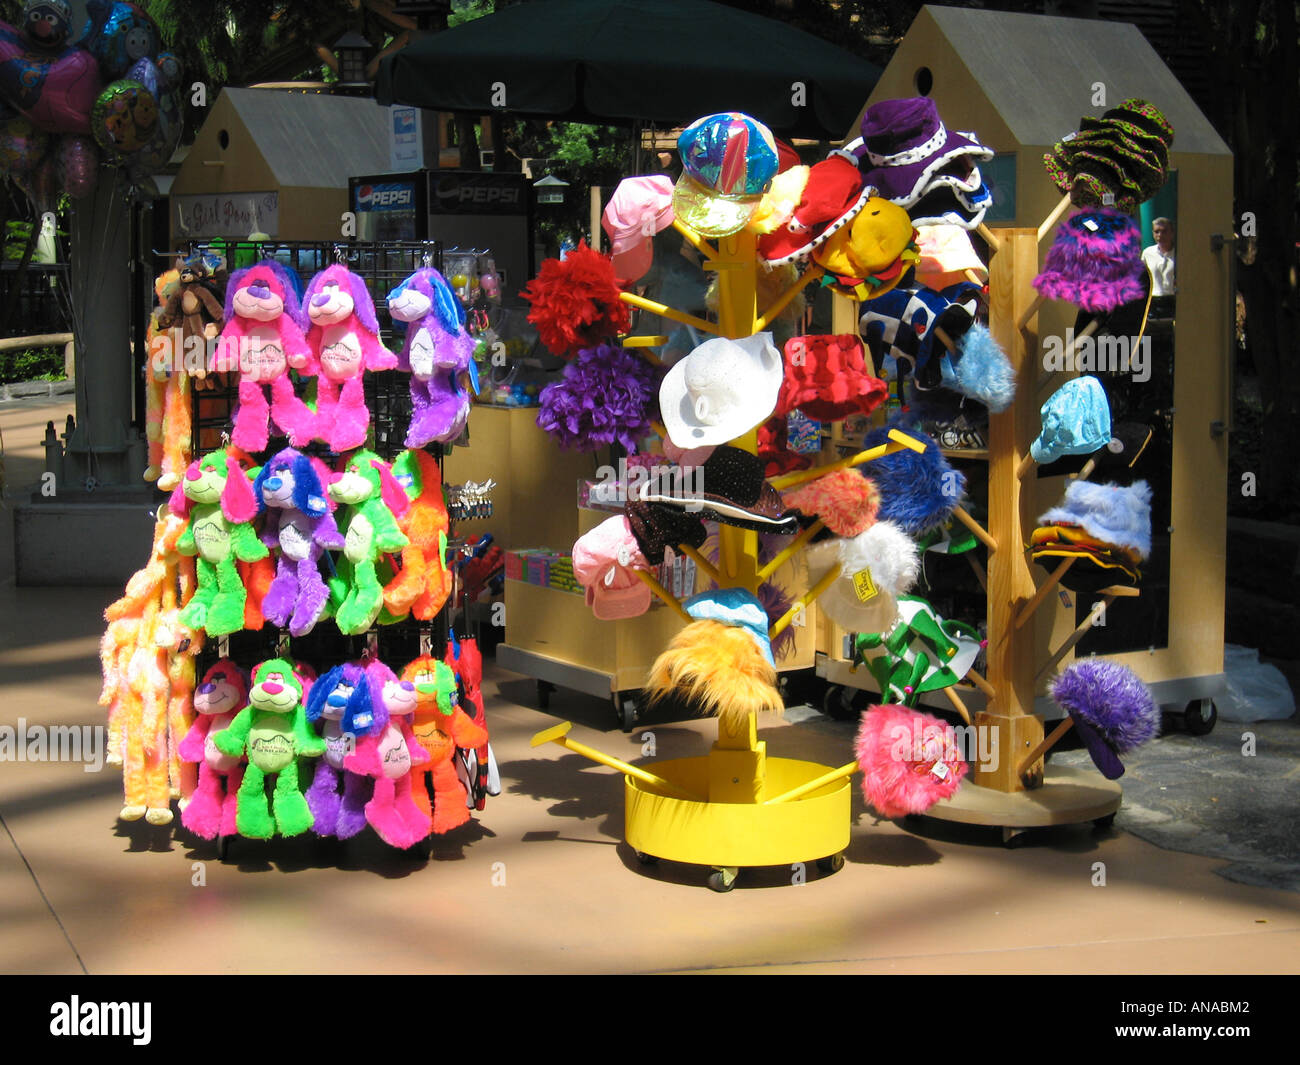 Colorful Market Stall Selling Hats and Cuddly Toys in Mall of America  Minneapolis St Paul USA ee05862f6d8